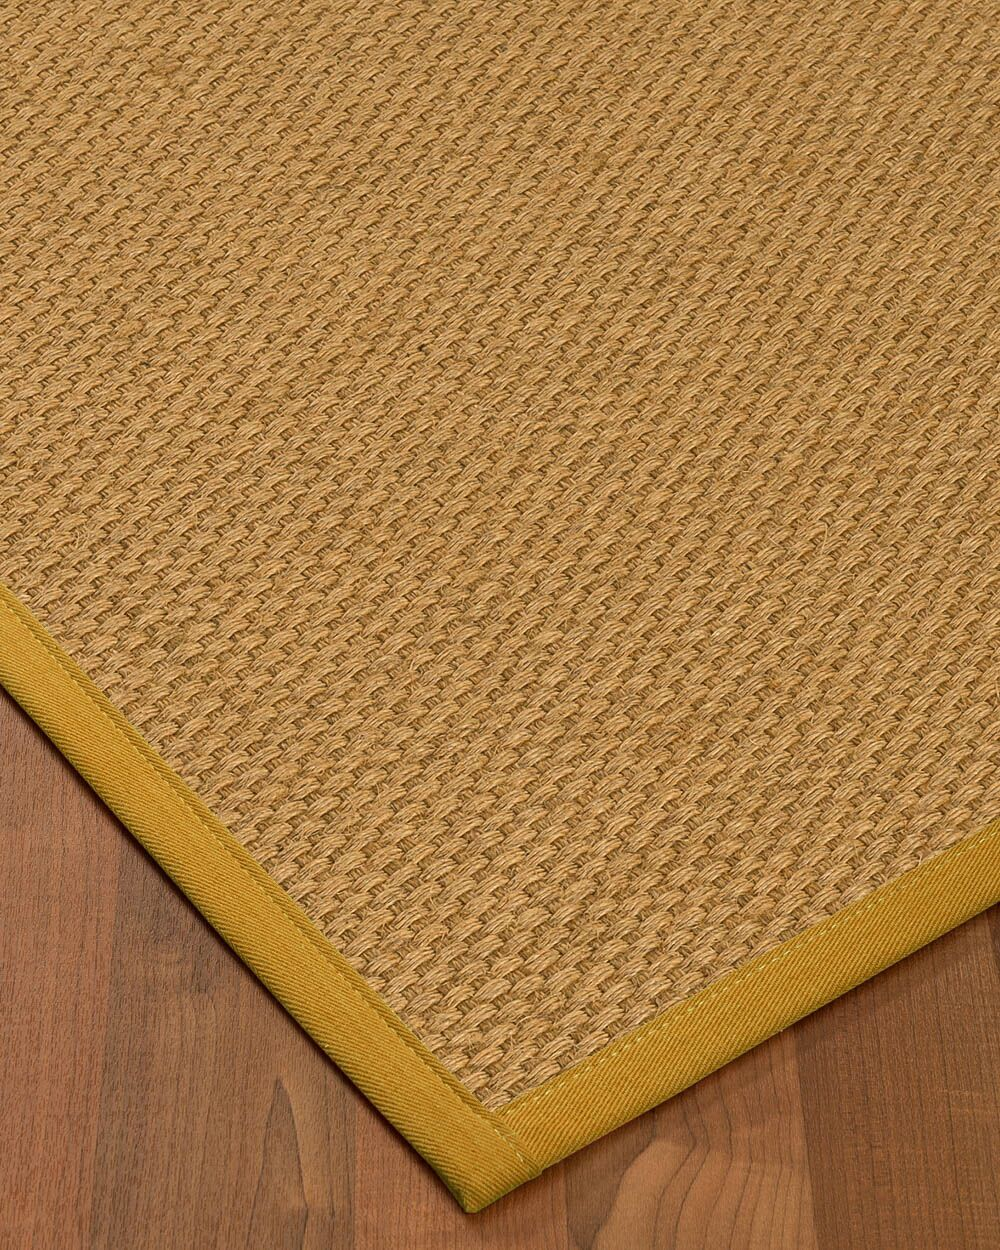 Kimpel Hand-Woven Beige Area Rug Rug Size: Rectangle 9' x 12'